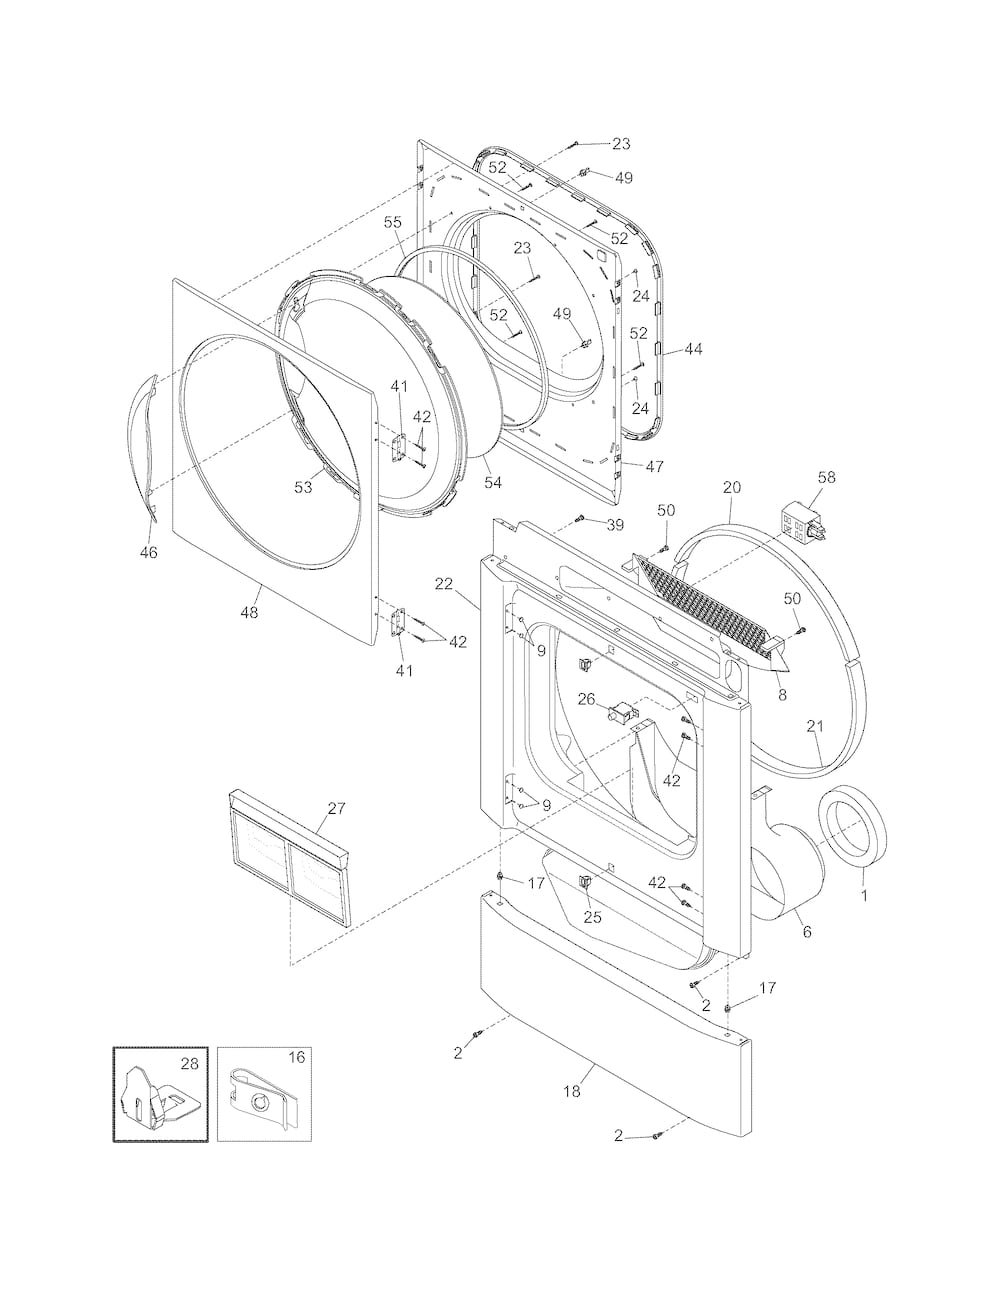 Frigidaire Dryer Parts | Model Gceq2152Es0 | Sears Partsdirect regarding Kenmore 80 Series Dryer Parts Diagram